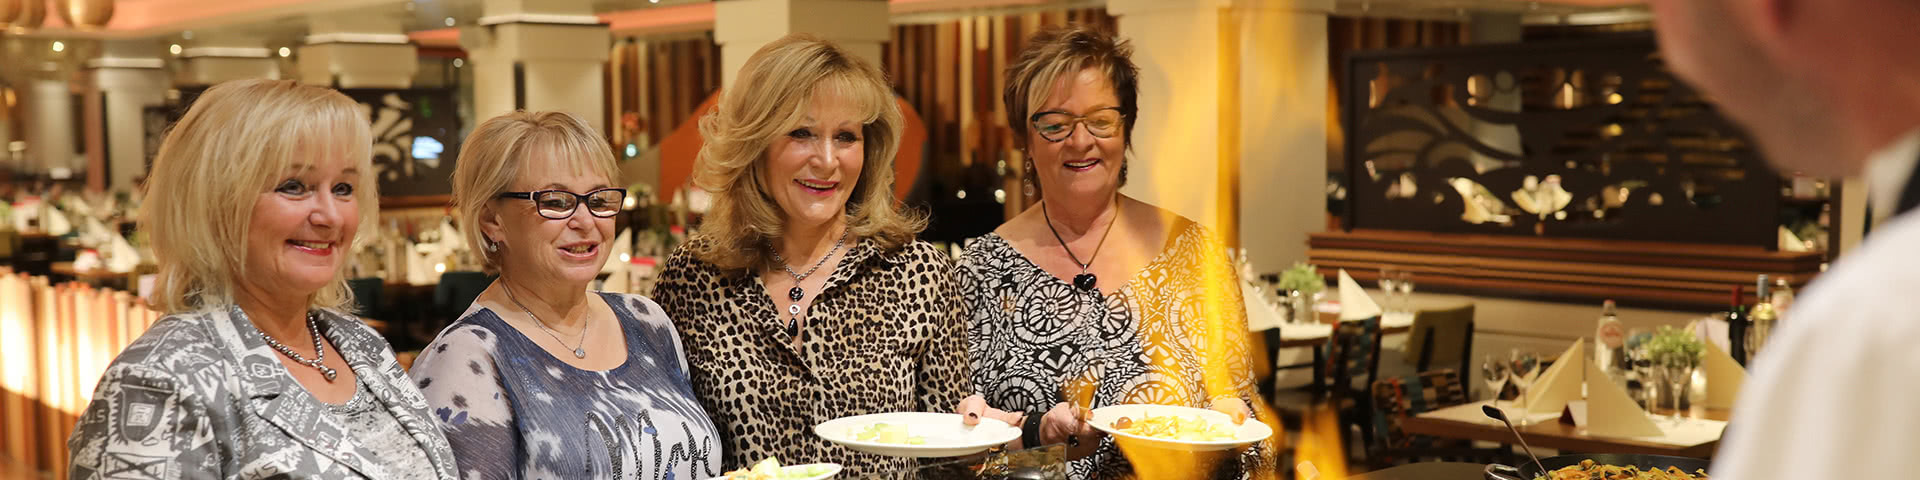 Vier Frauen stehen am Live-Cooking-Buffet in Egmond aan Zee